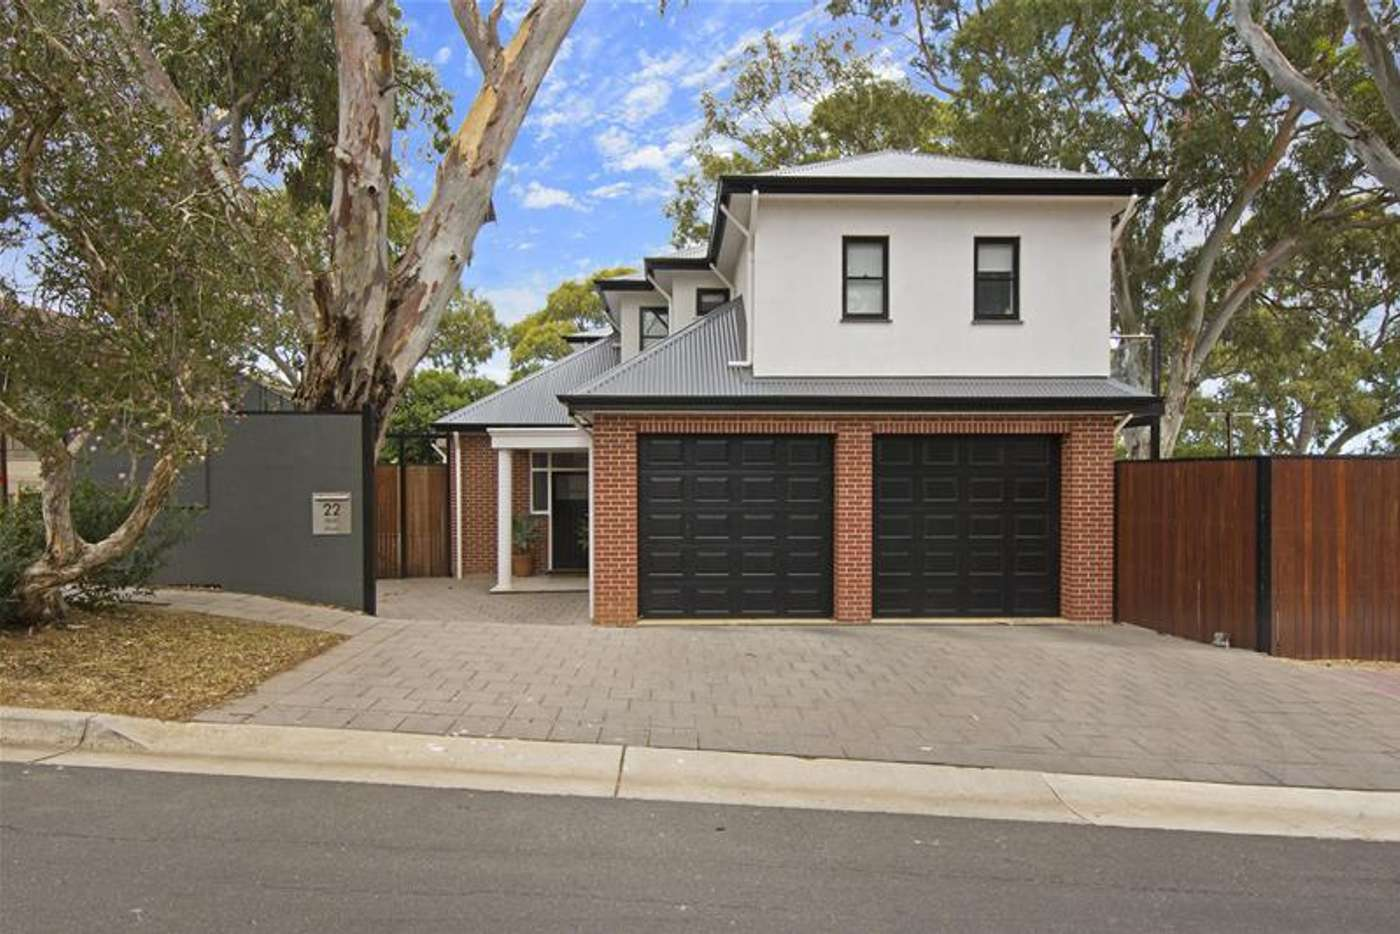 Main view of Homely house listing, 22 Gilles Road, Glen Osmond SA 5064